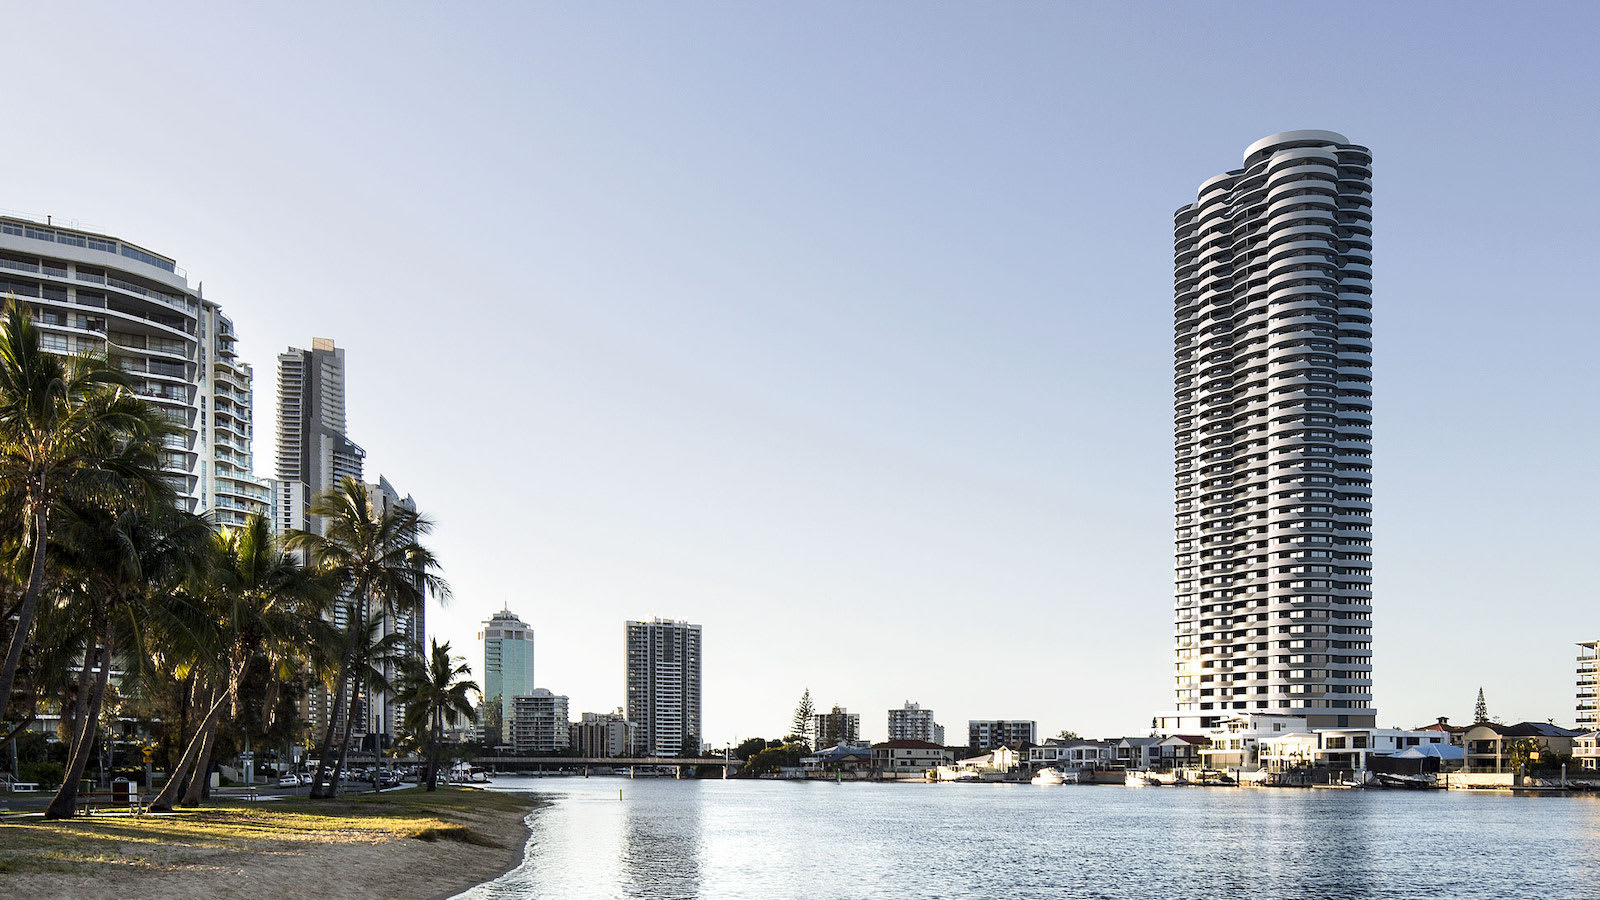 Urban discusses Surfers Paradise apartment block Chevron One with Bensons senior development manager Alberto Palombaro